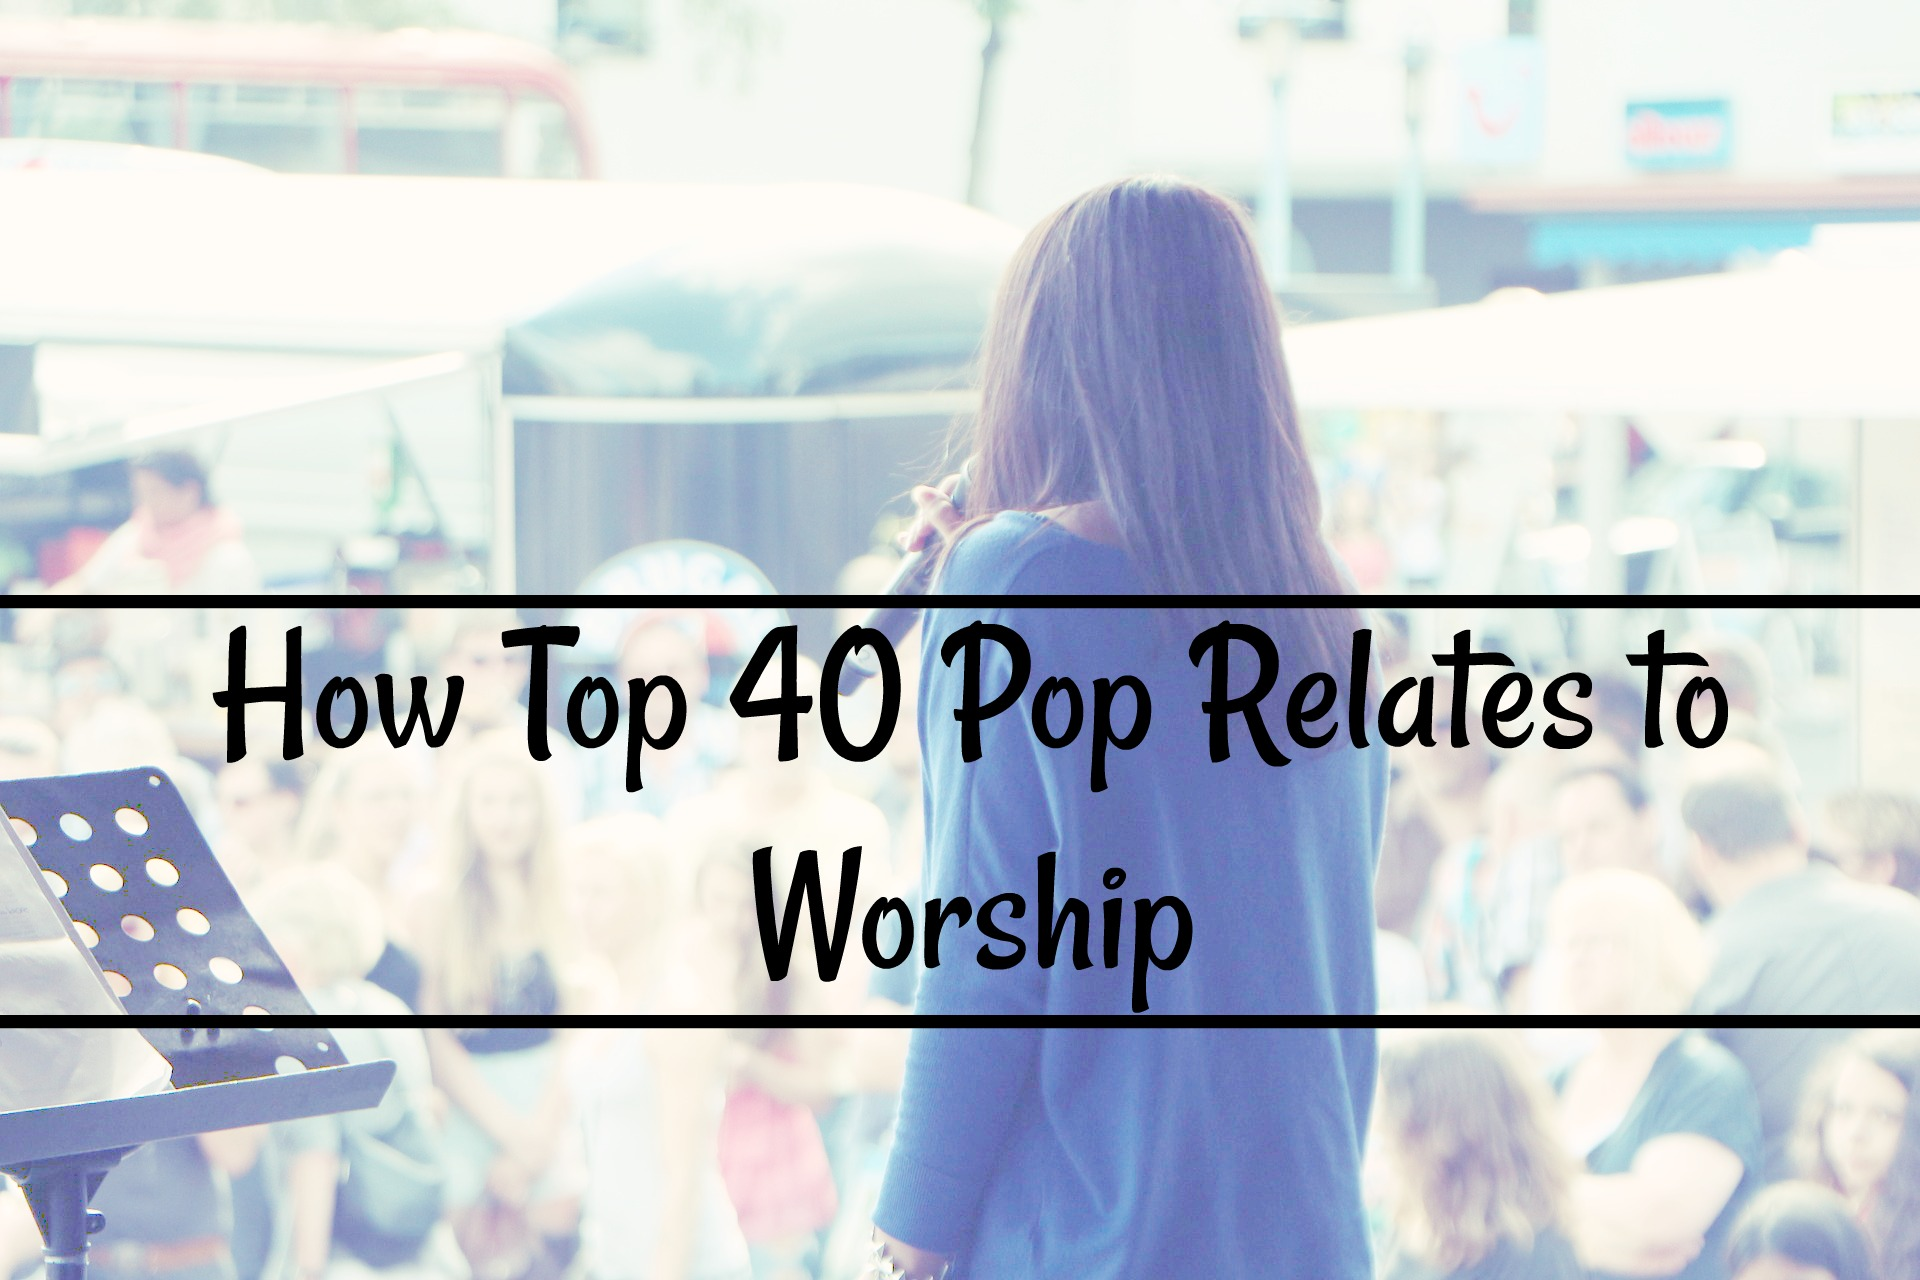 How Top-40 Pop Relates to Worship